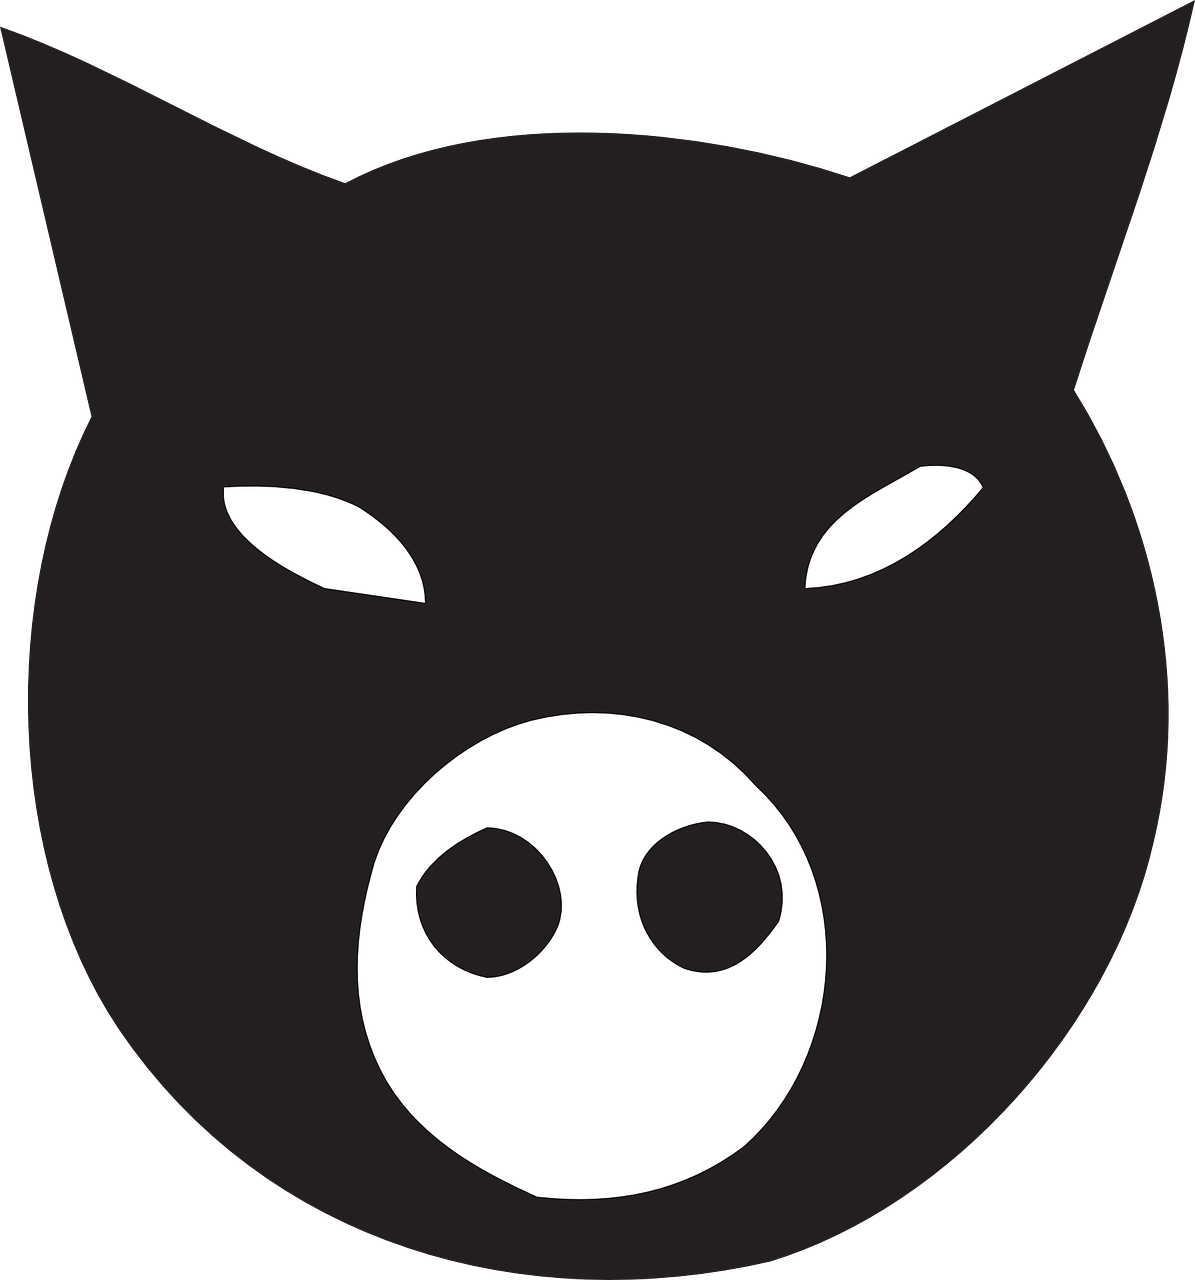 ninja,pig,animal,face,black,farm,free vector graphics,free pictures, free photos, free images, royalty free, free illustrations, public domain